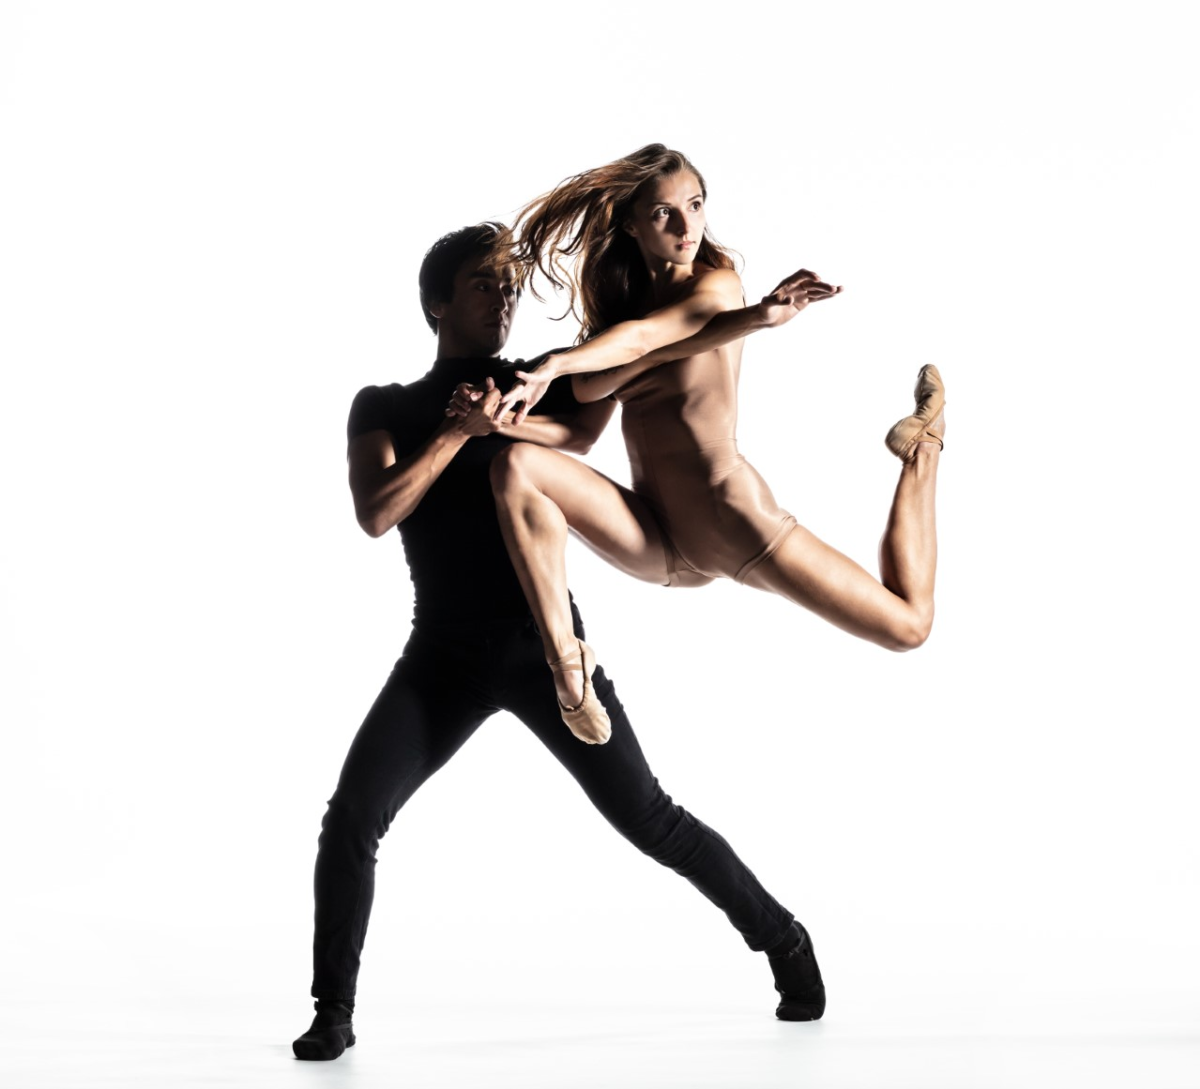 A man dancing with a woman that's in mid-air in front of a white background.